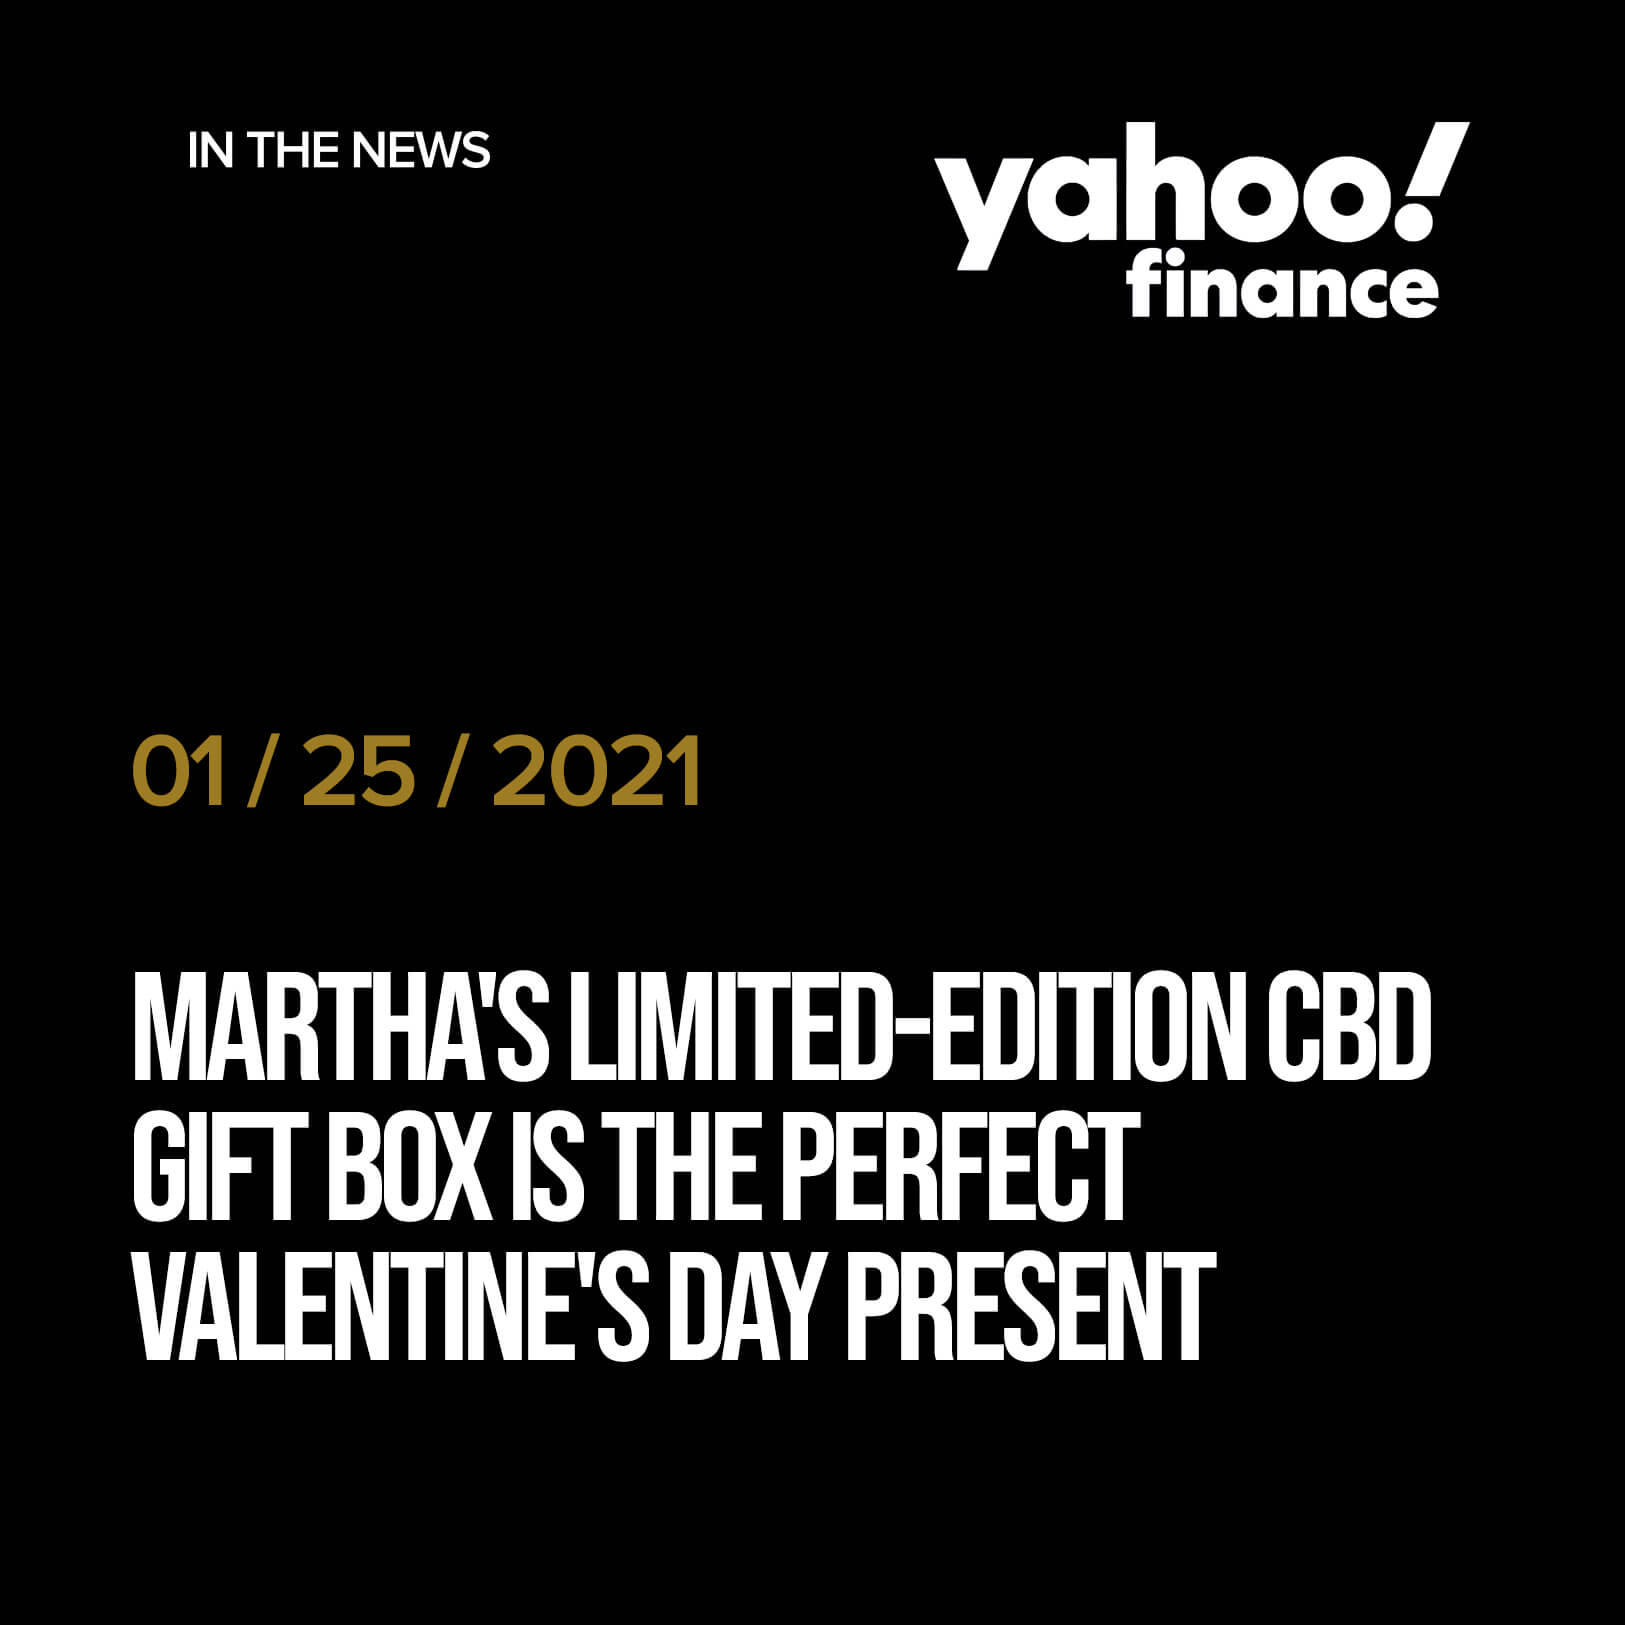 Martha's Limited-Edition CBD Gift Box Is the Perfect Valentine's Day Present